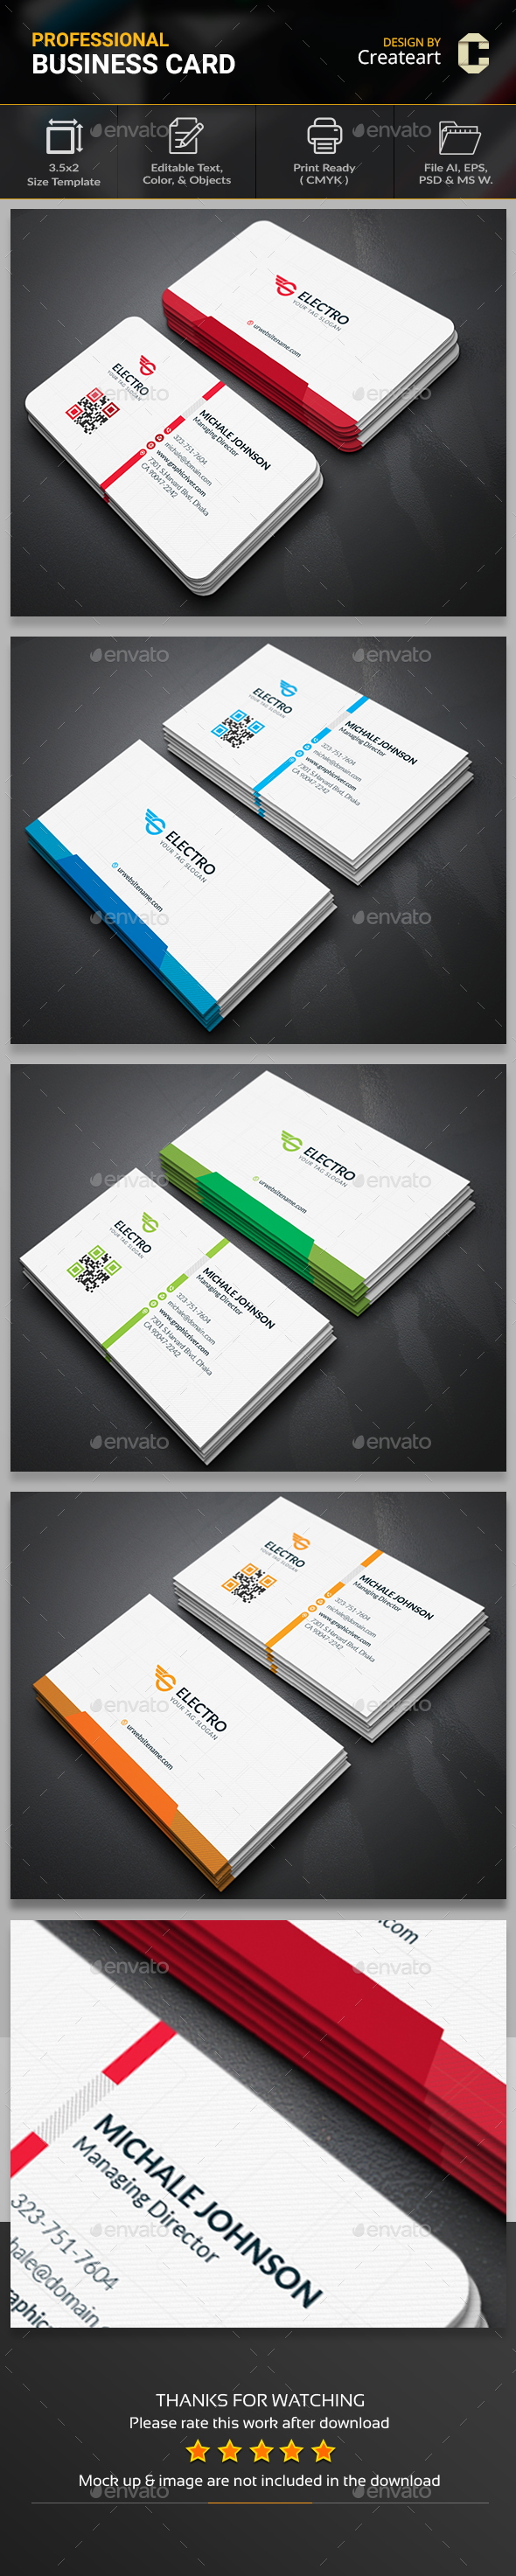 Business card template psd business card templates pinterest business card template psd friedricerecipe Images